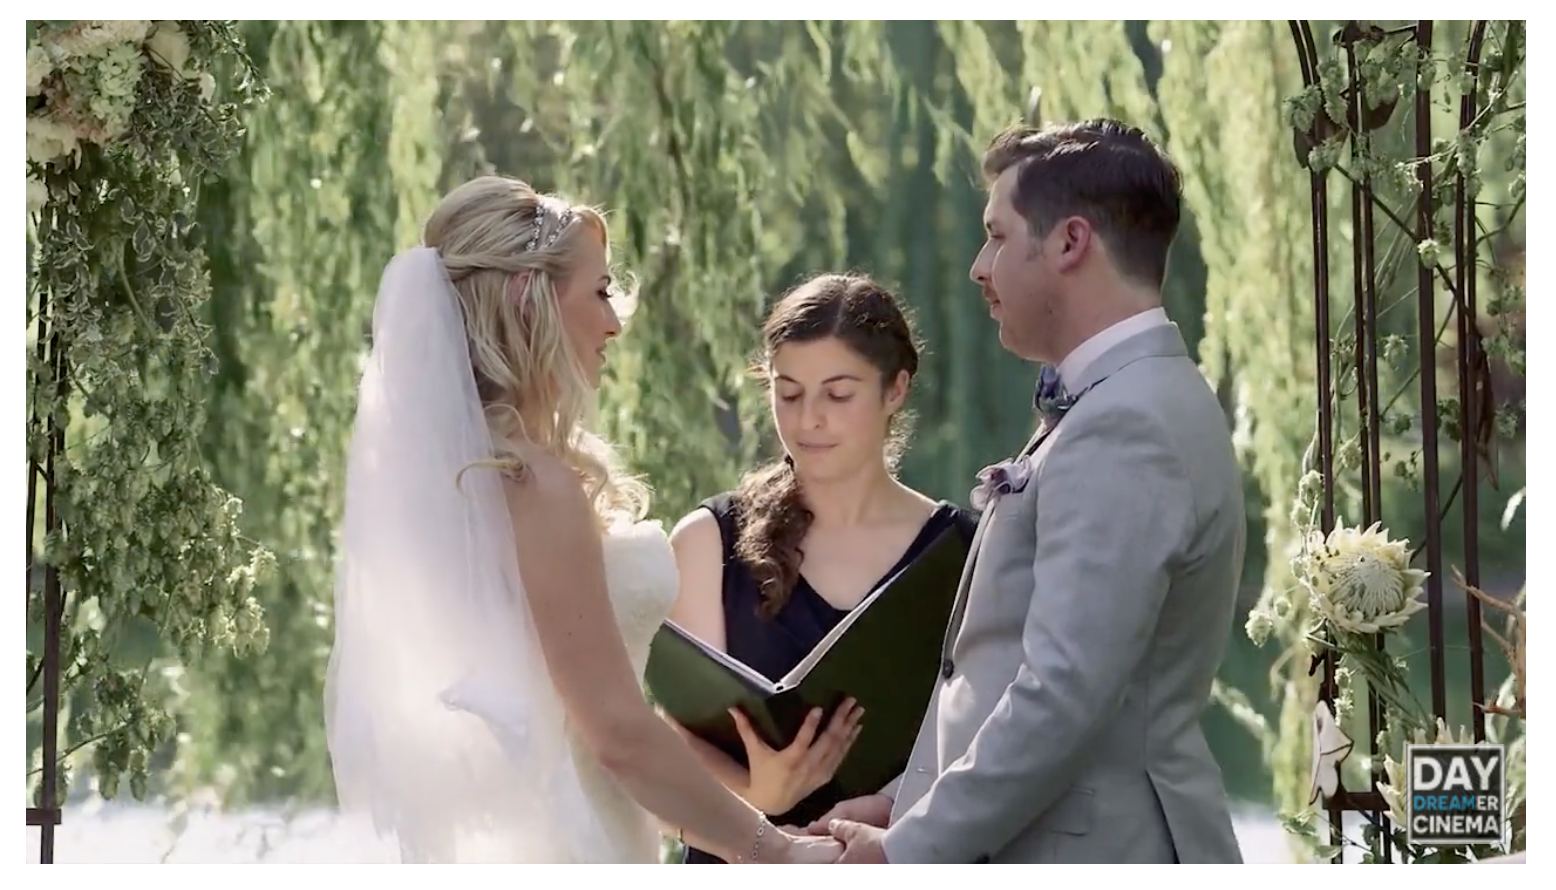 Watch Alicia in action at this beautiful wedding, captured by one of our recommended vendors,  Day Dreamer Cinema !